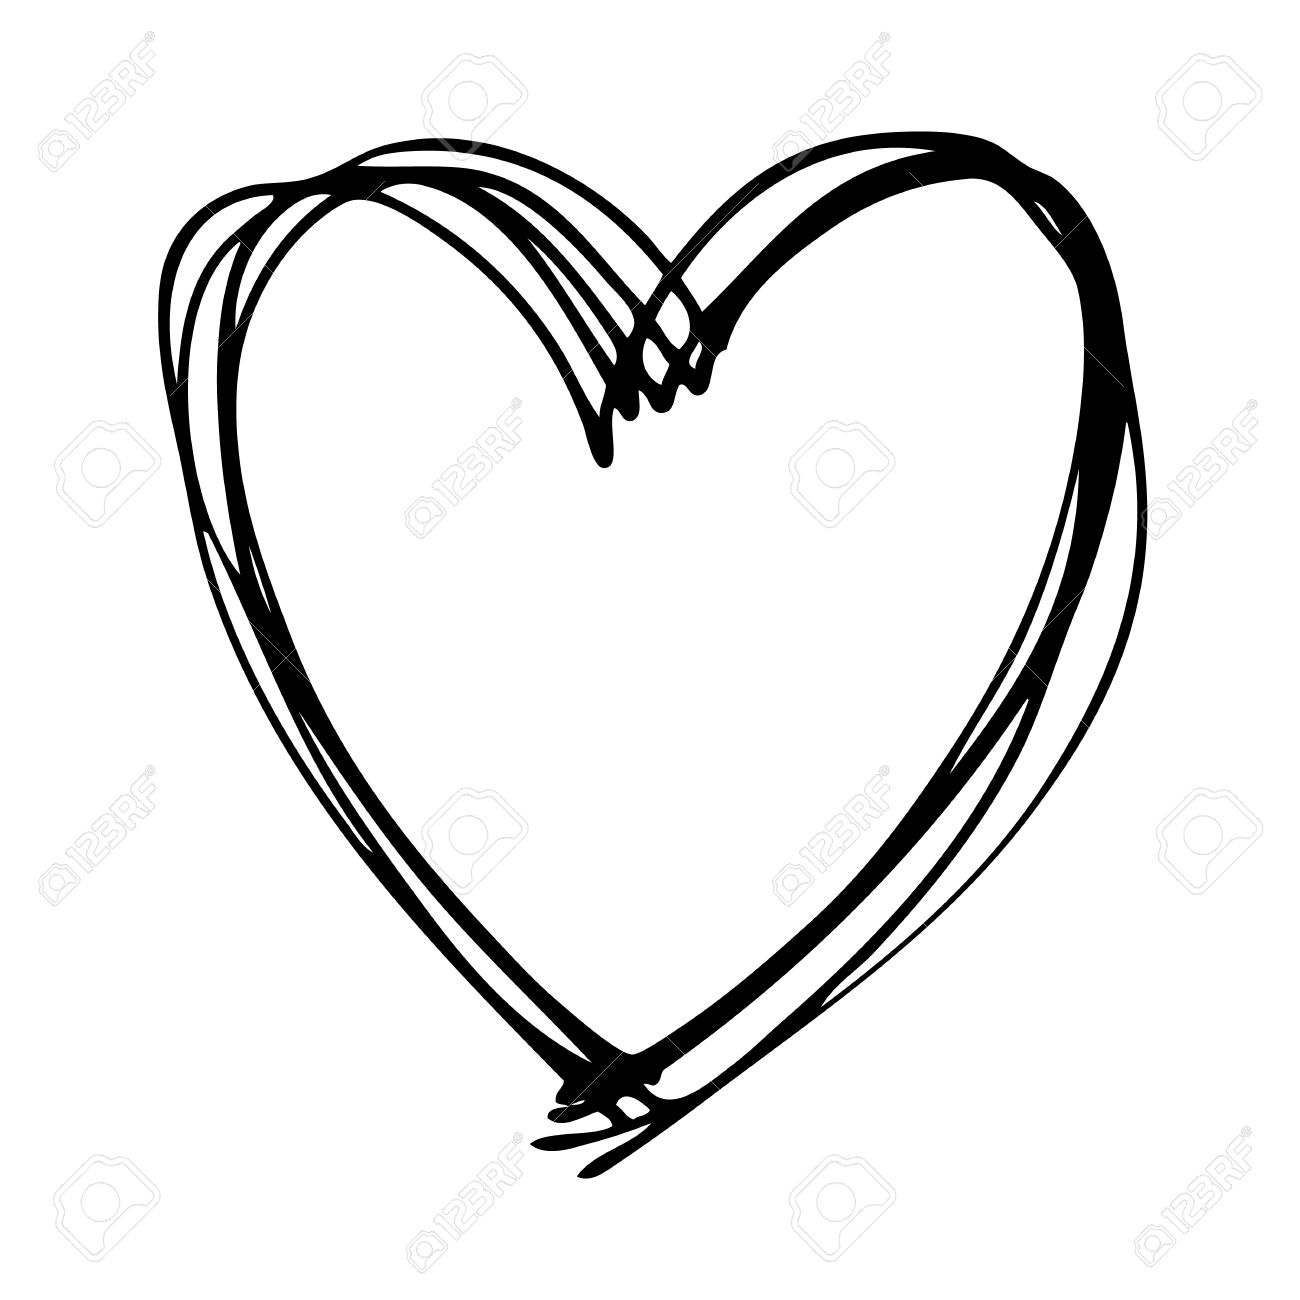 1300x1300 Doodle Hand Drawn Heart Shaped On White Background Royalty Free